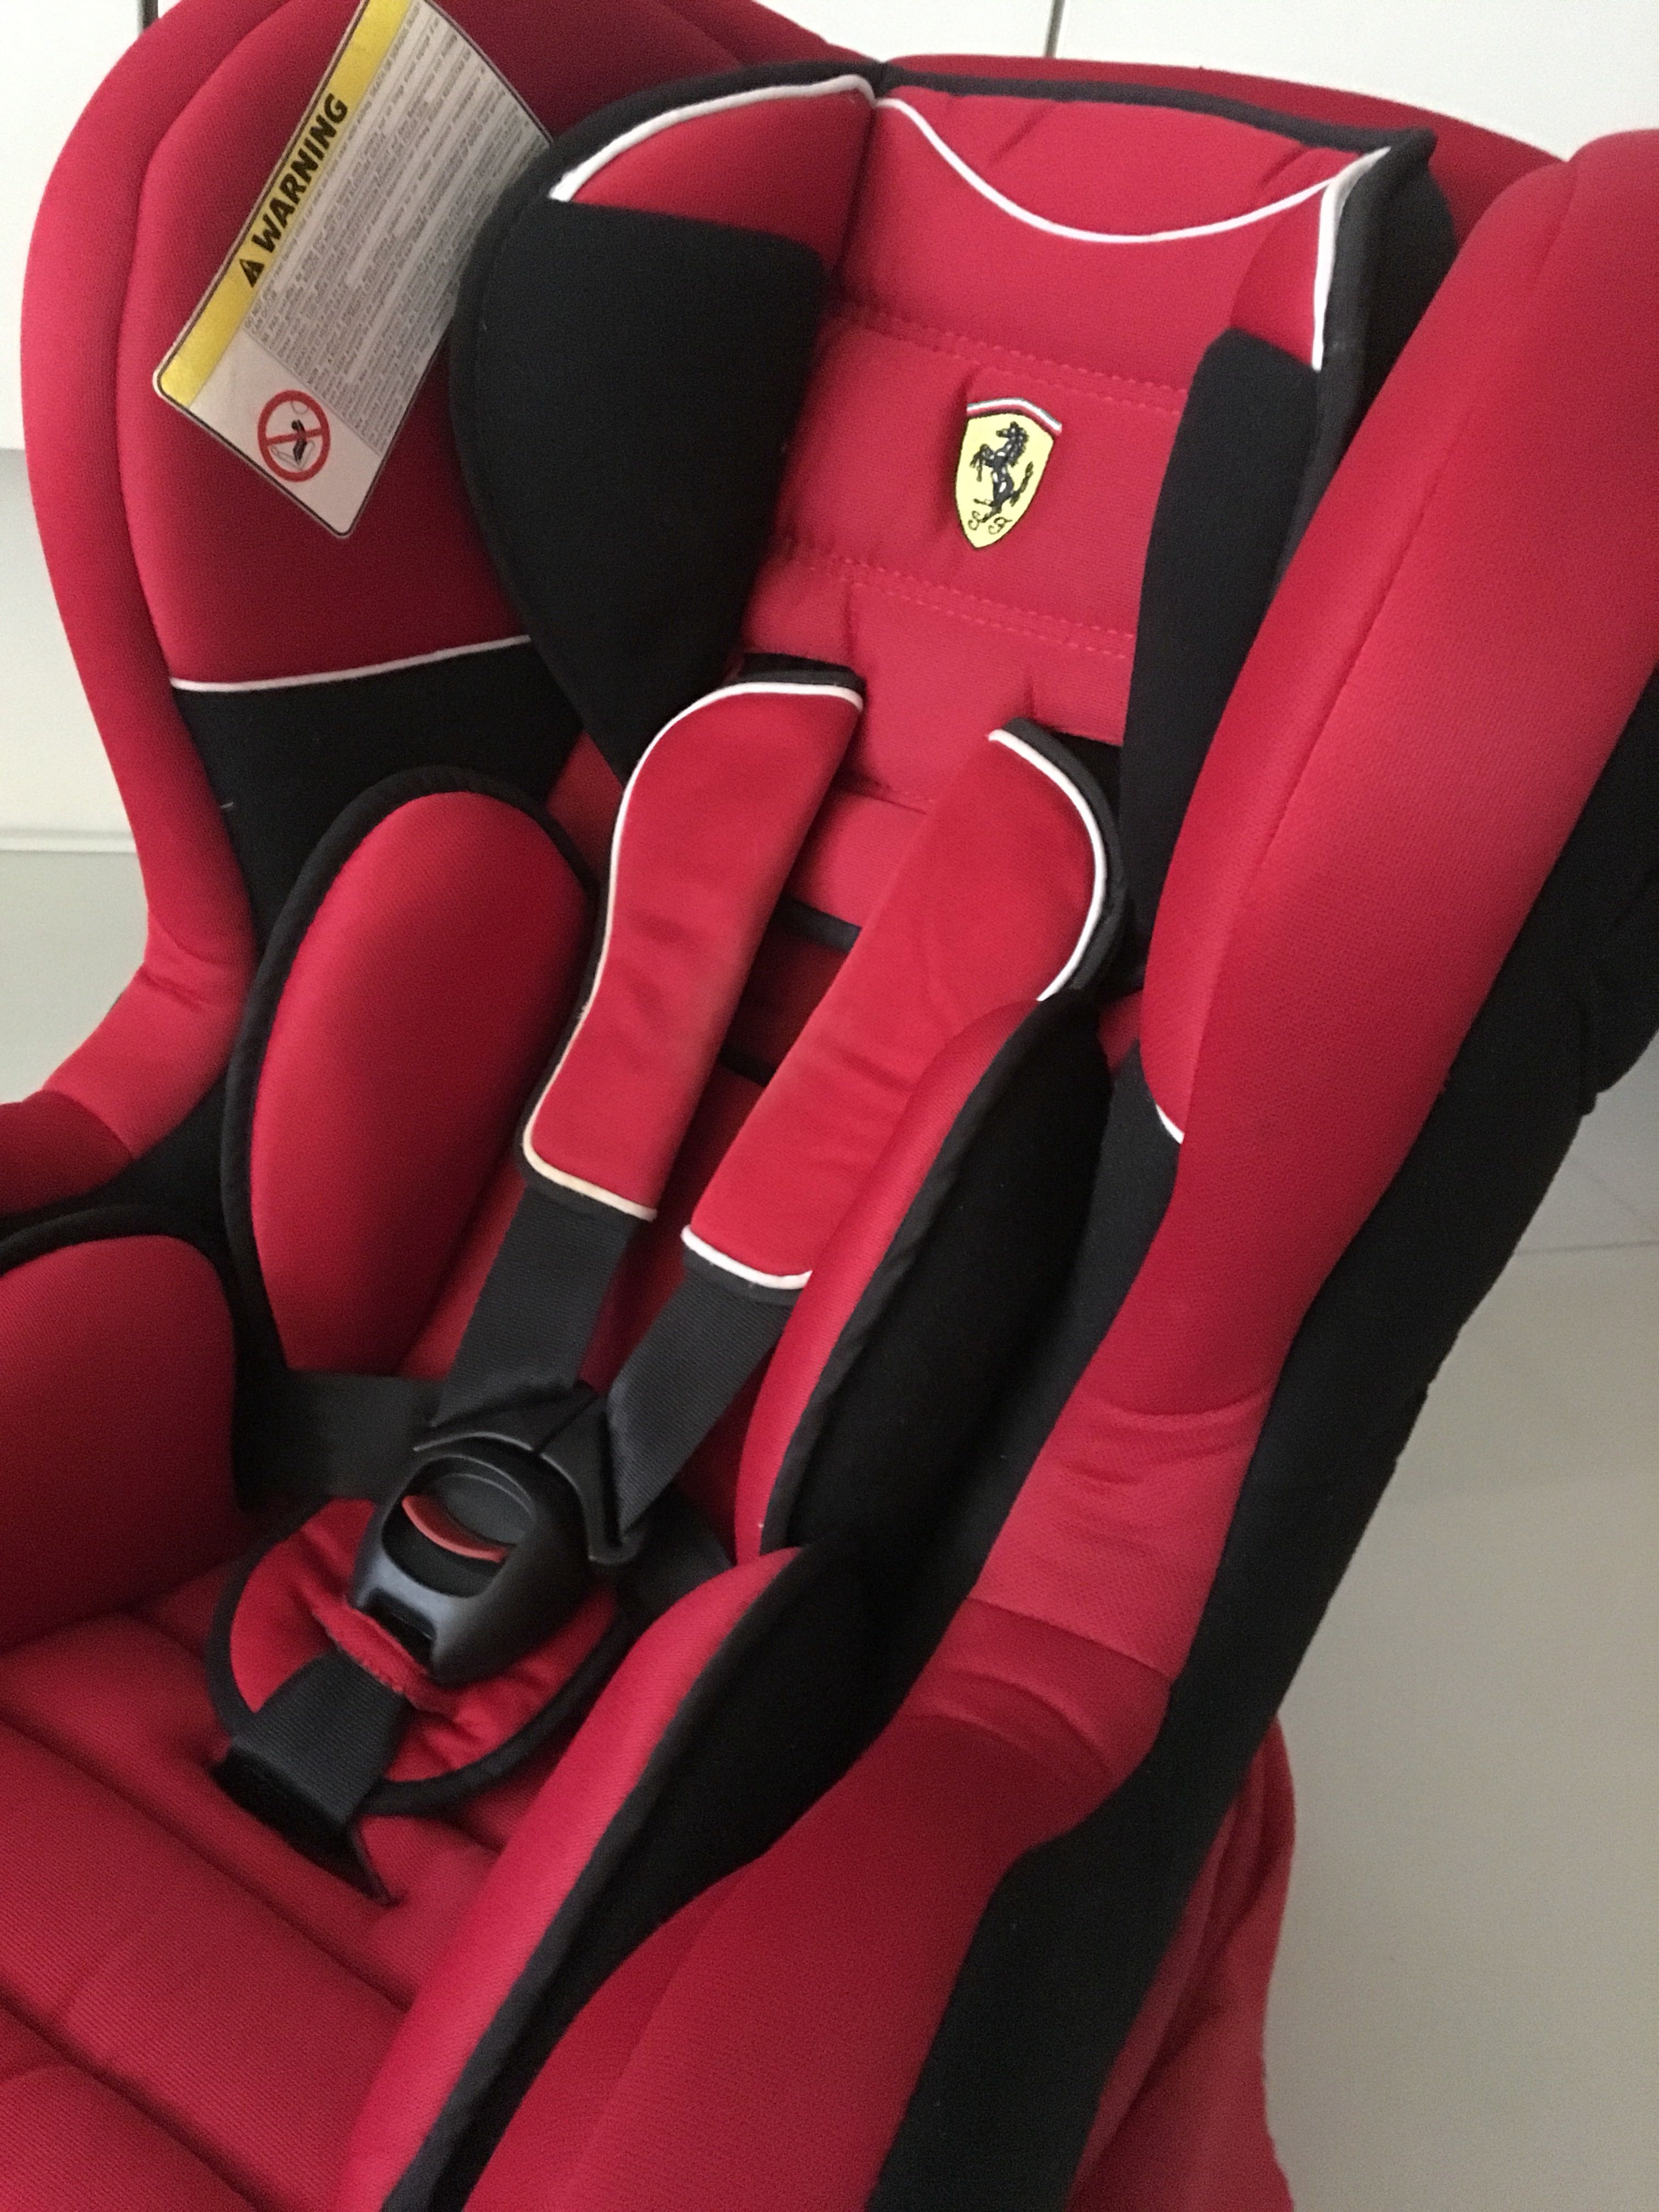 images clothes free ferrari photo kids download cars and clipart png image freepngimg